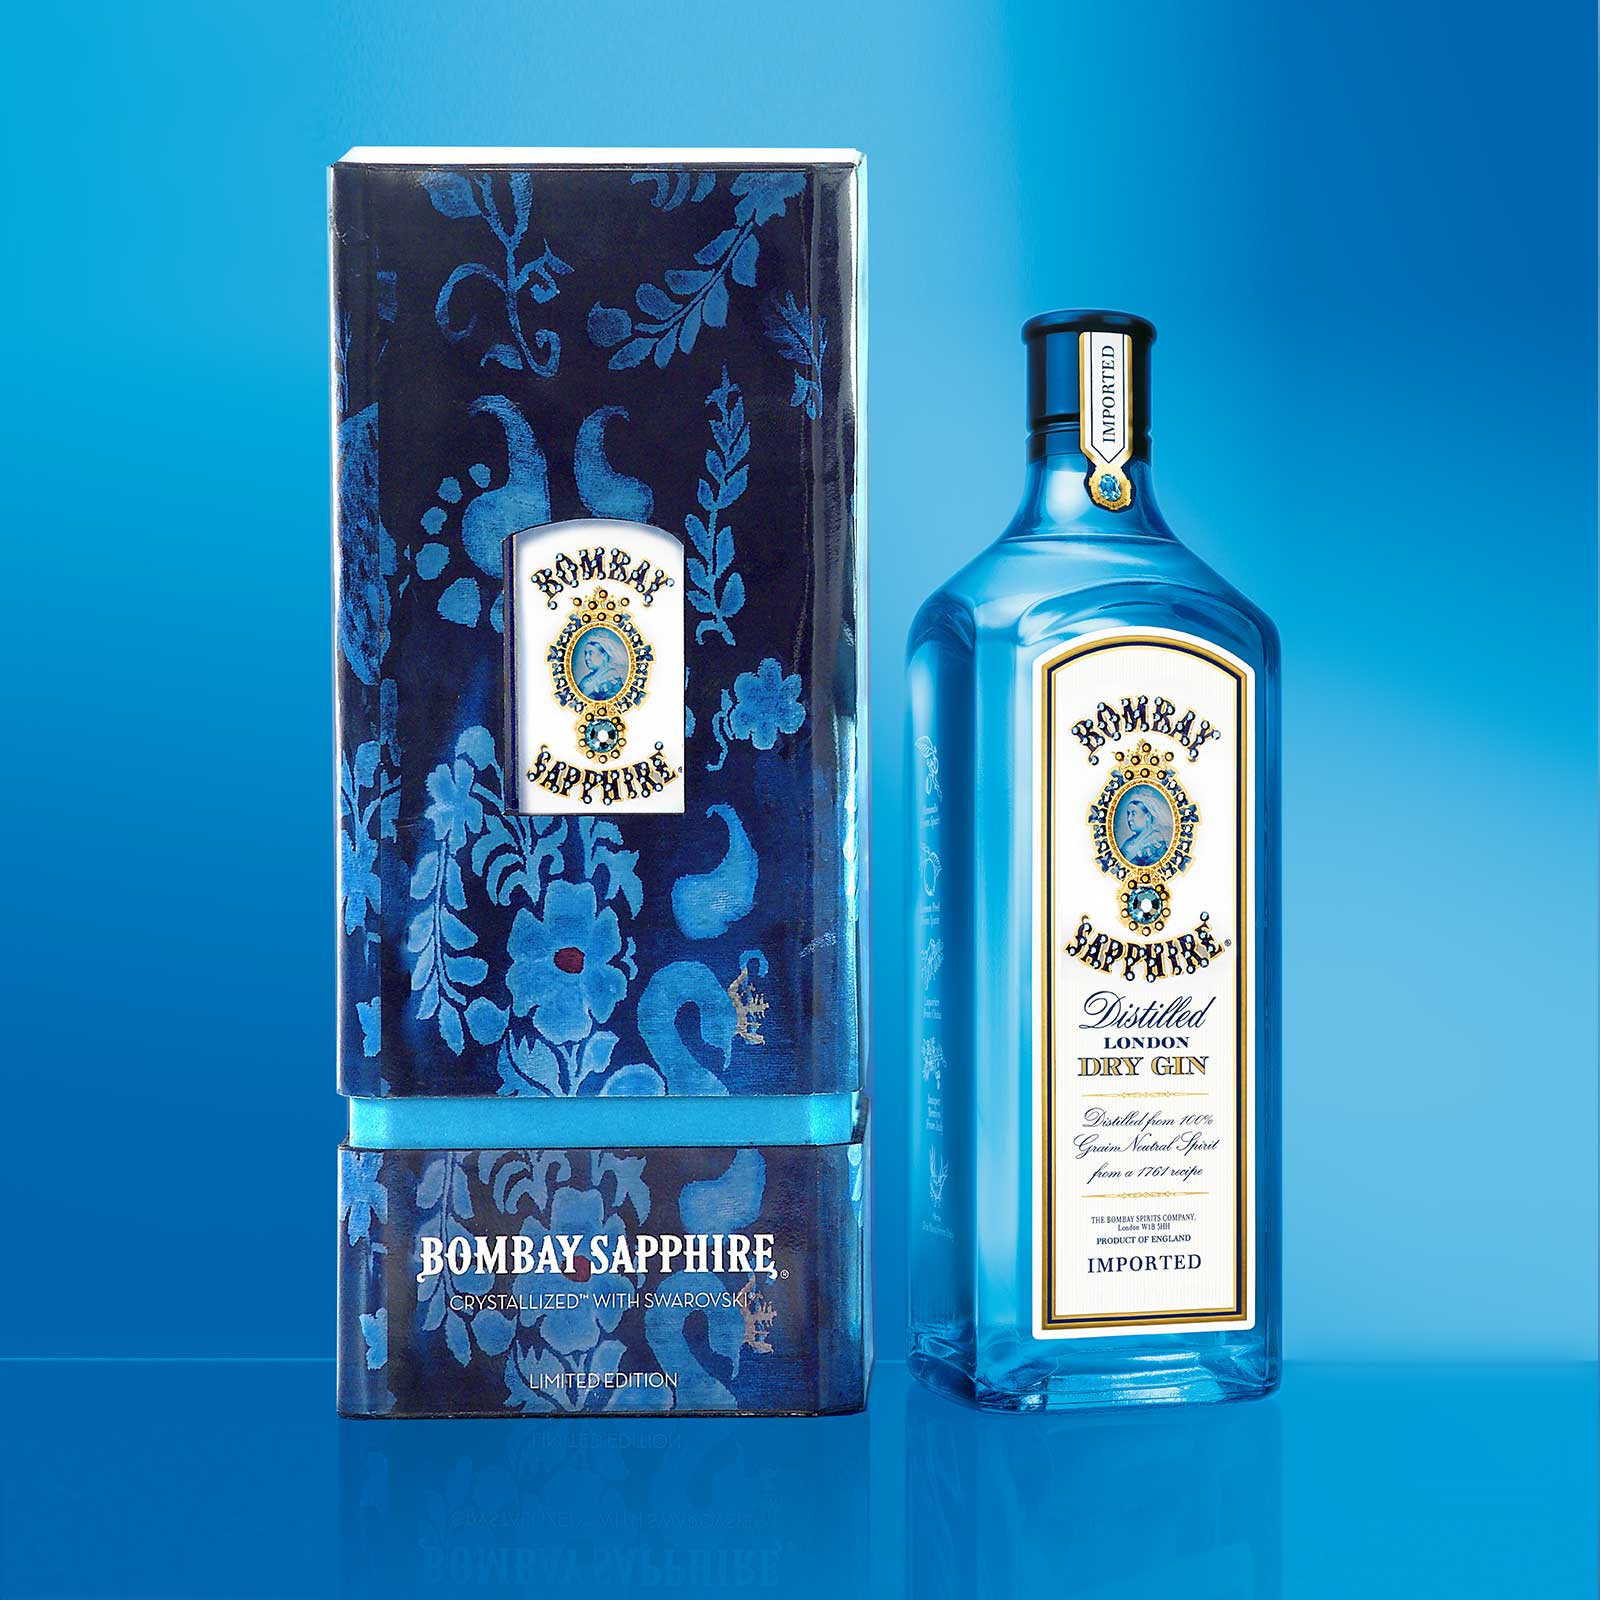 Agencia Tsc Bombay Sapphire Packaging Y Campa As Corporativas # Muebles Saphire